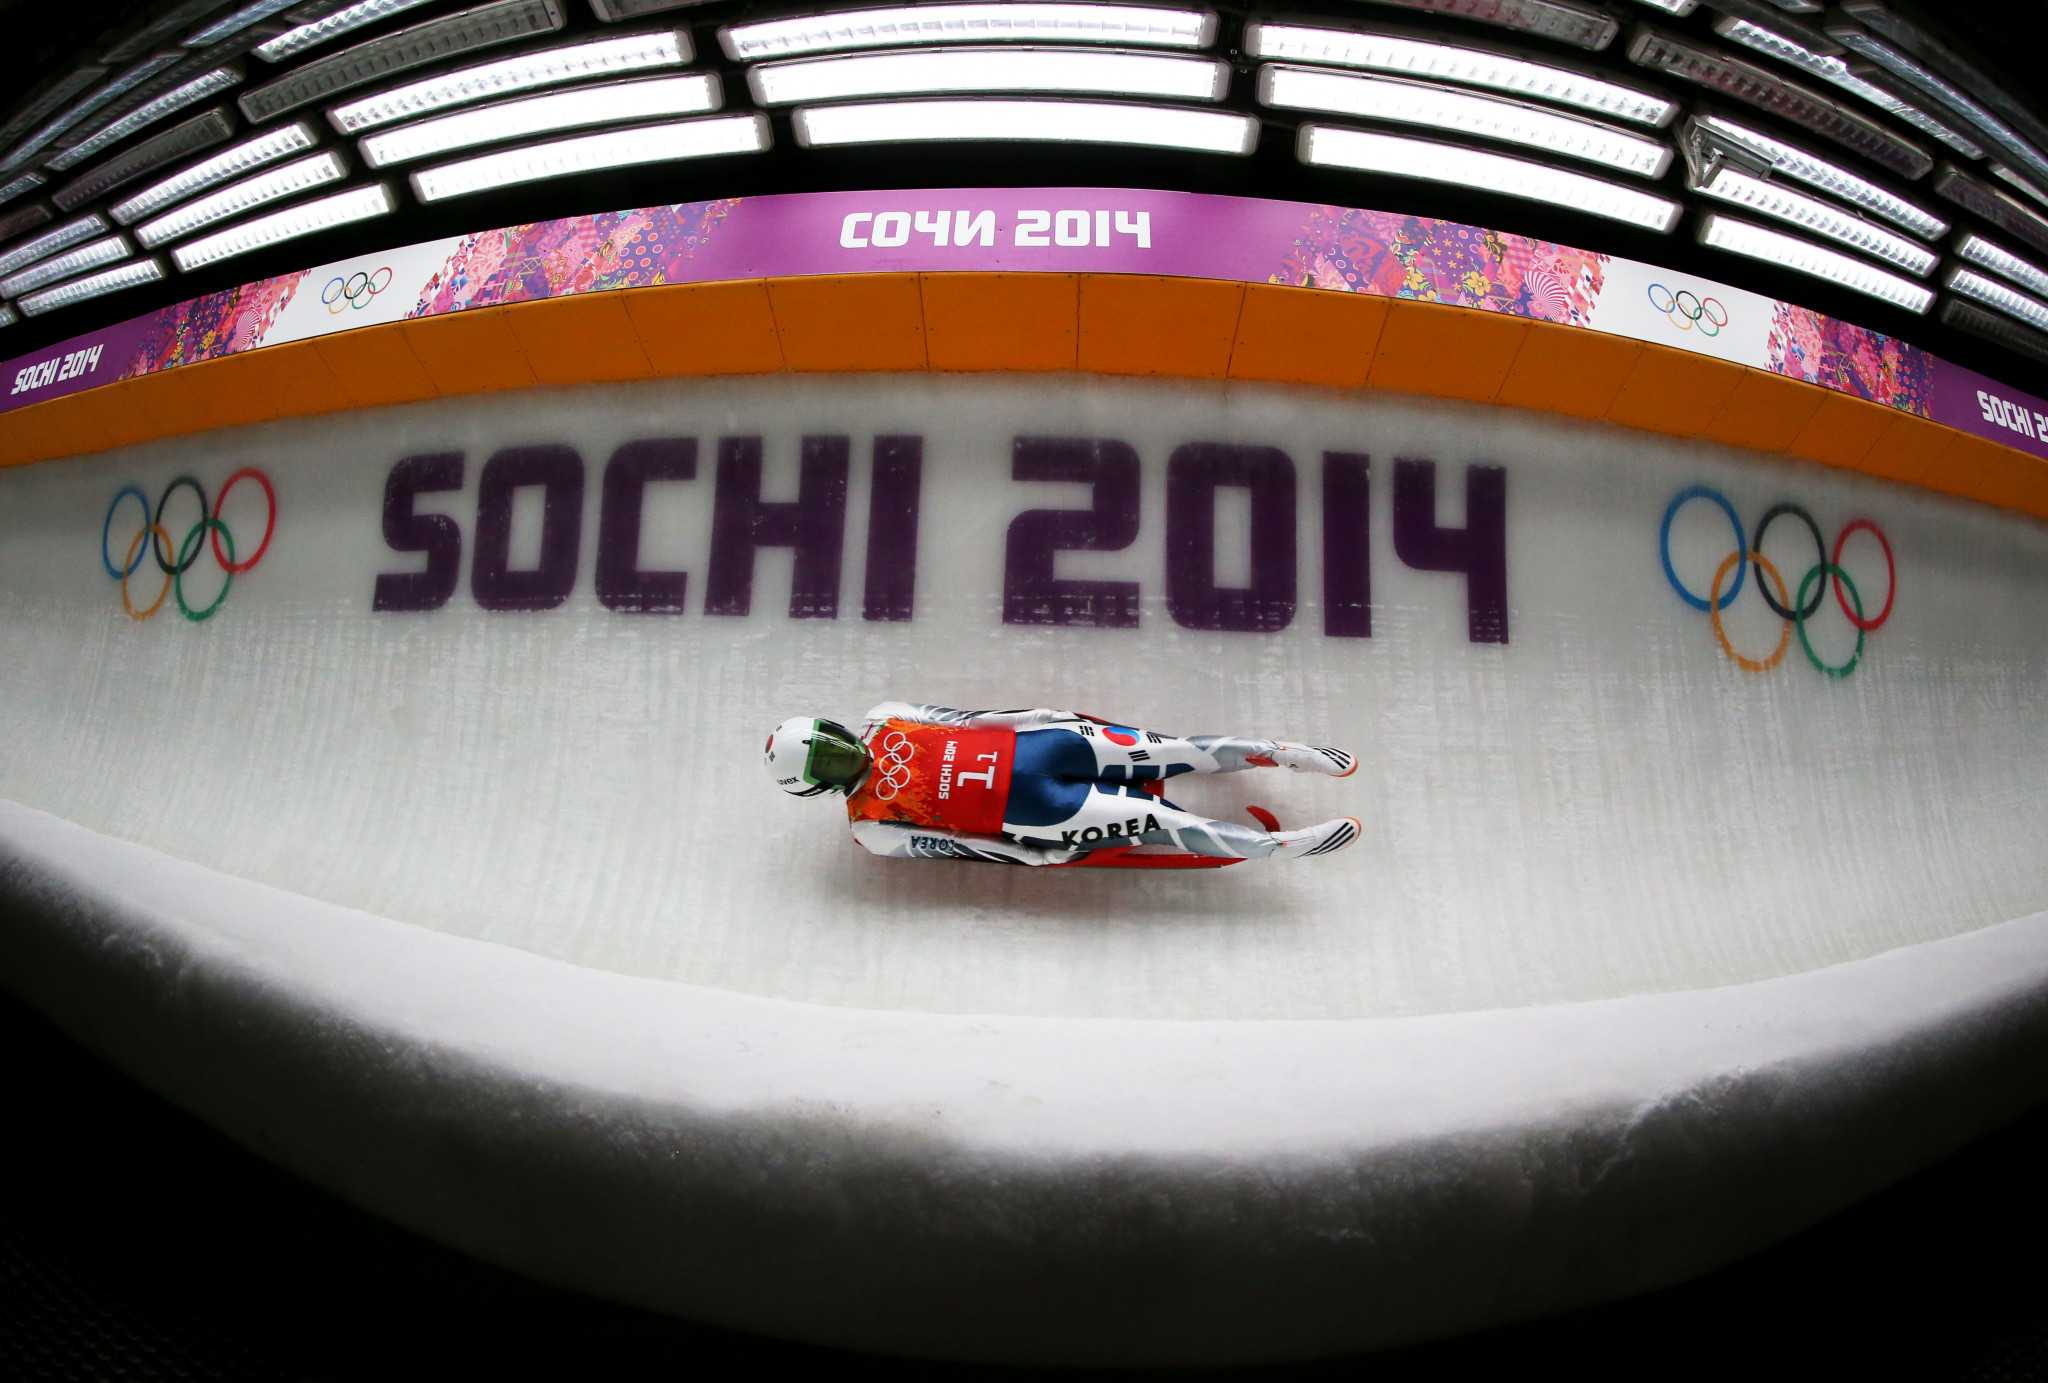 Sochi, host of the 2014 Winter Olympic Games, was awarded the 2020 FIL World Championships back in 2016 ©Getty Images